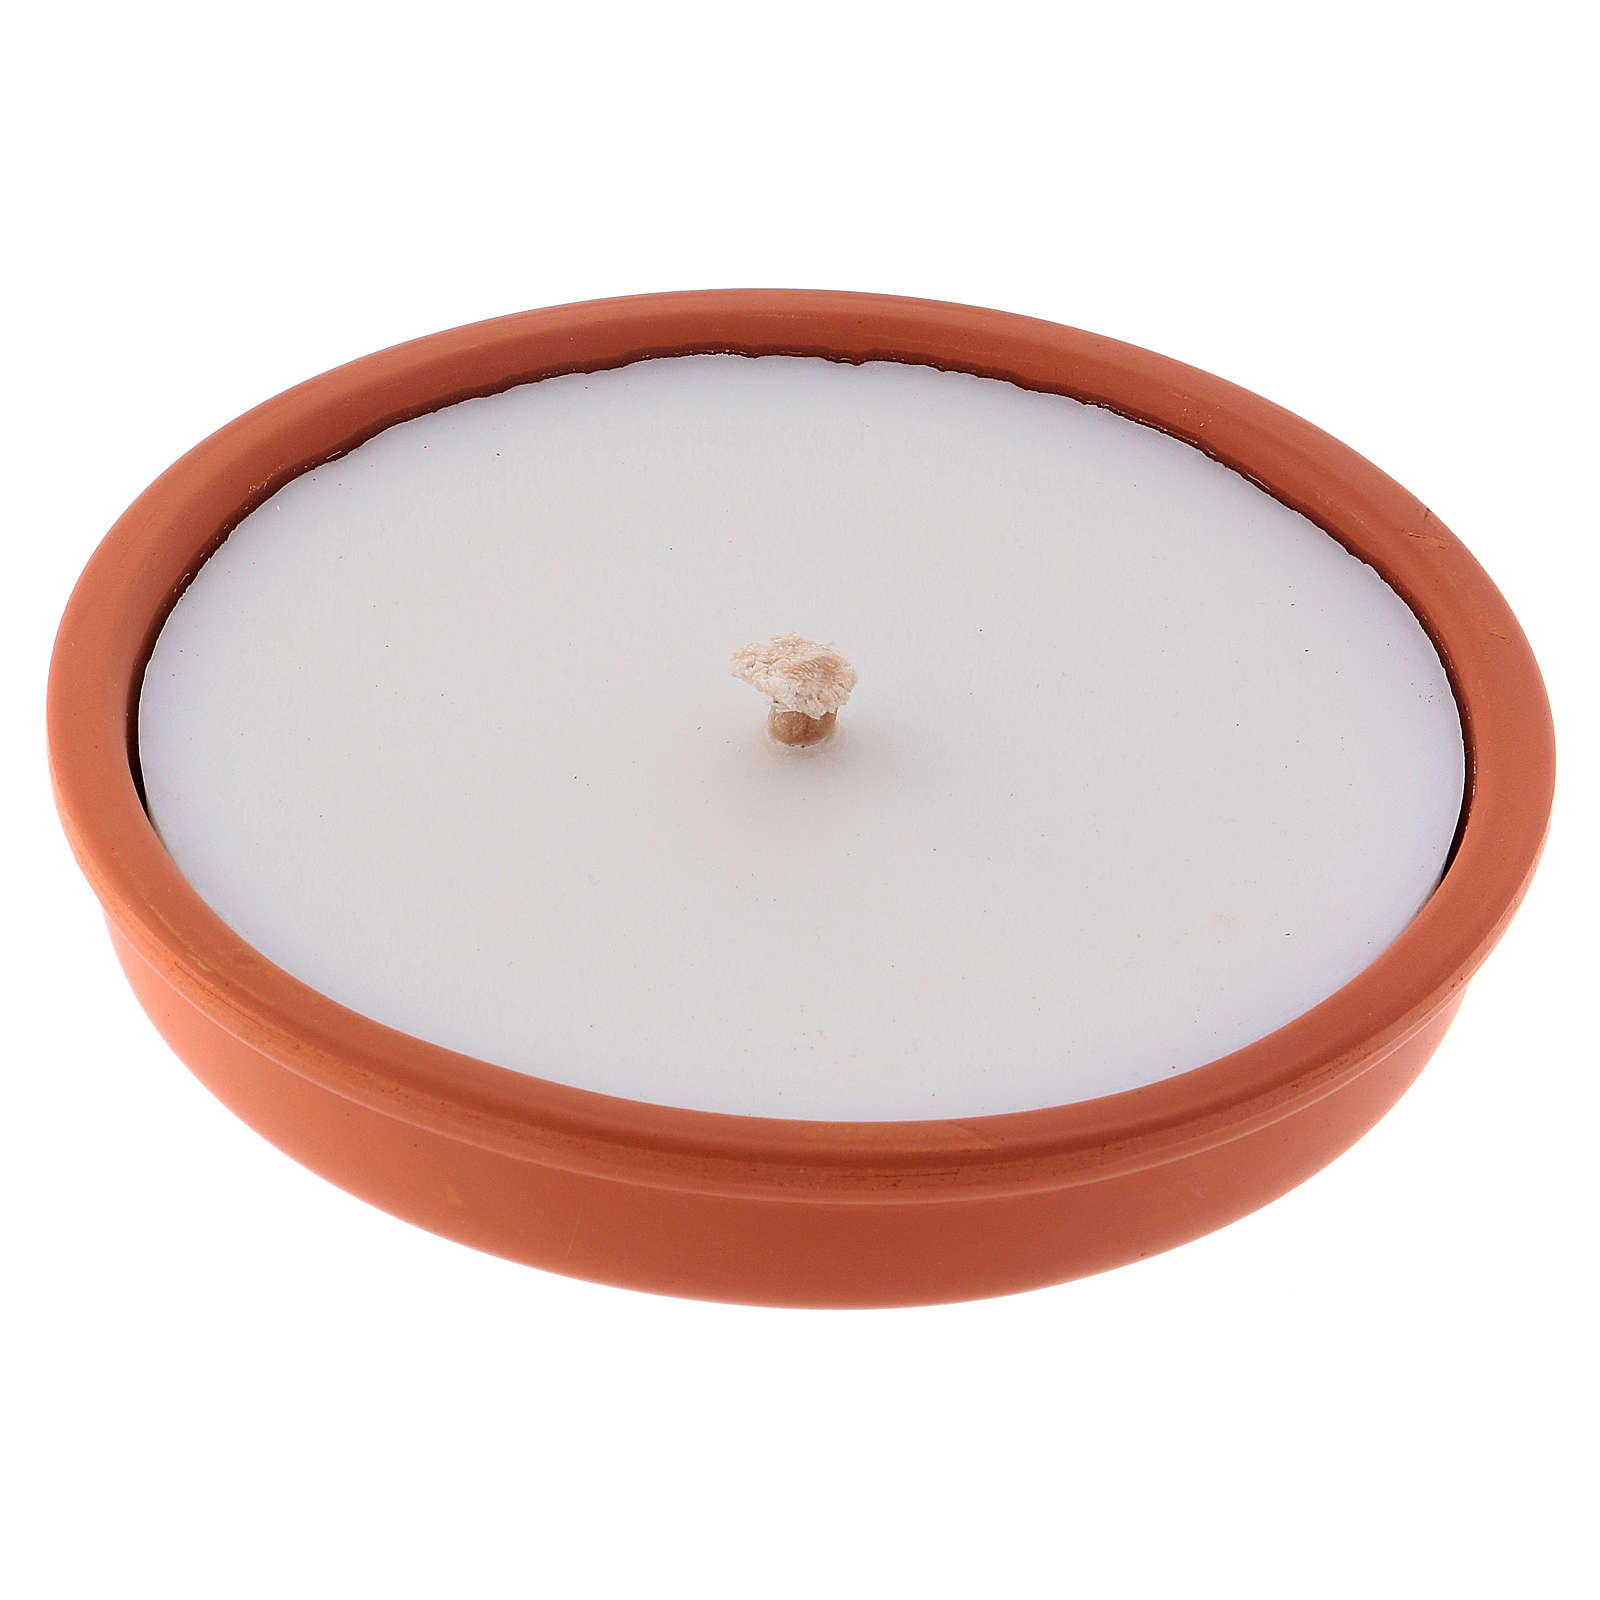 Outdoor Candle in Terracotta, white wax 3